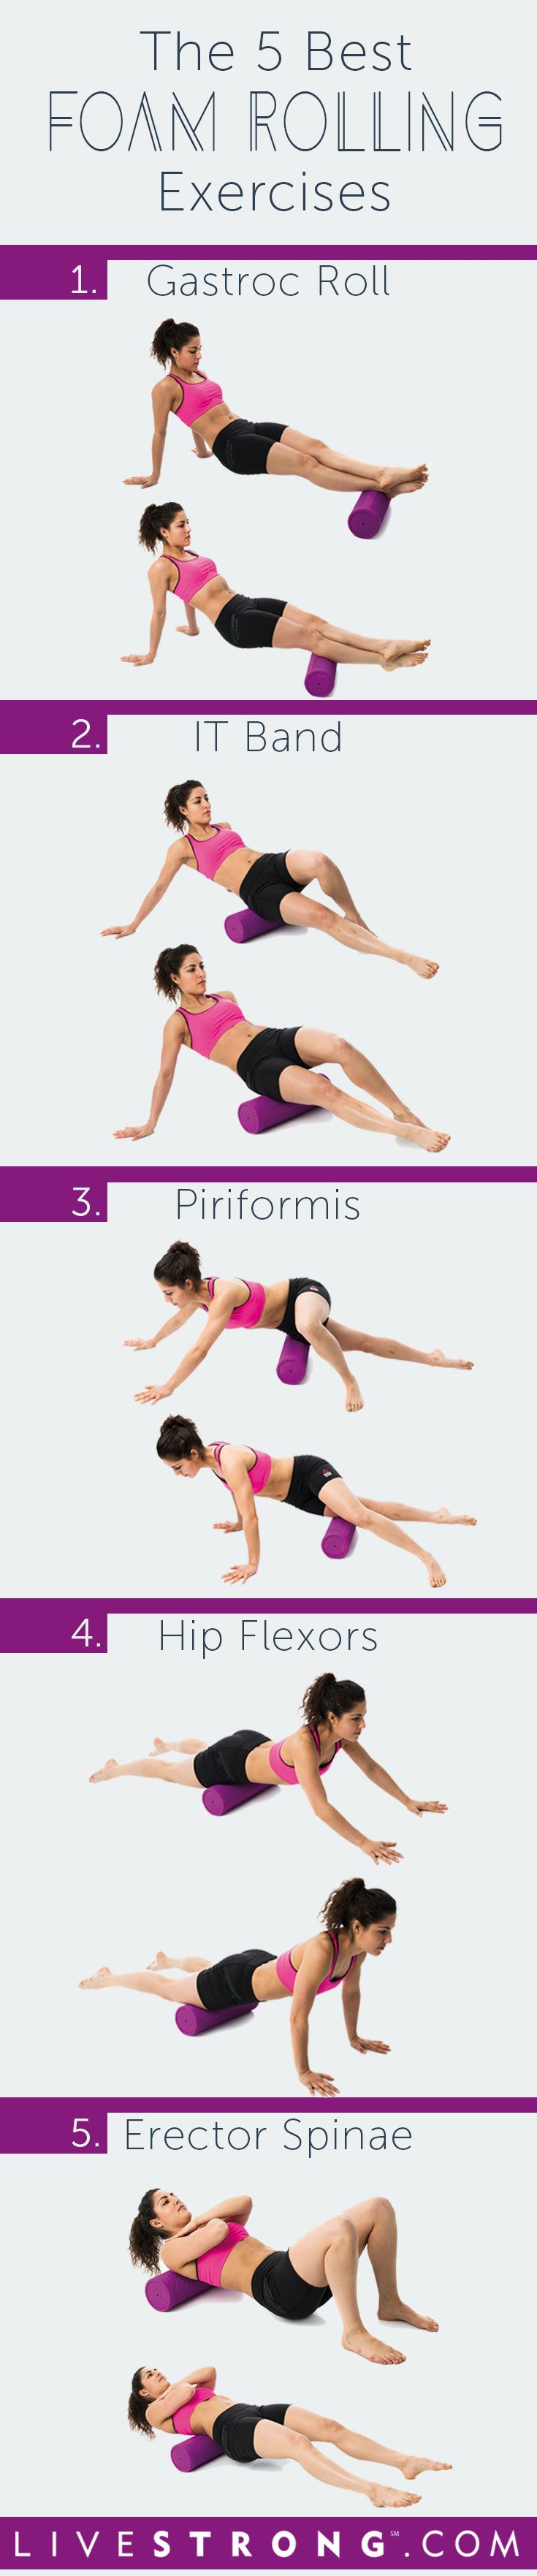 Effective Hip Flexor Stretch: 5 Foam Rolling Exercises to Relieve Sore Muscles